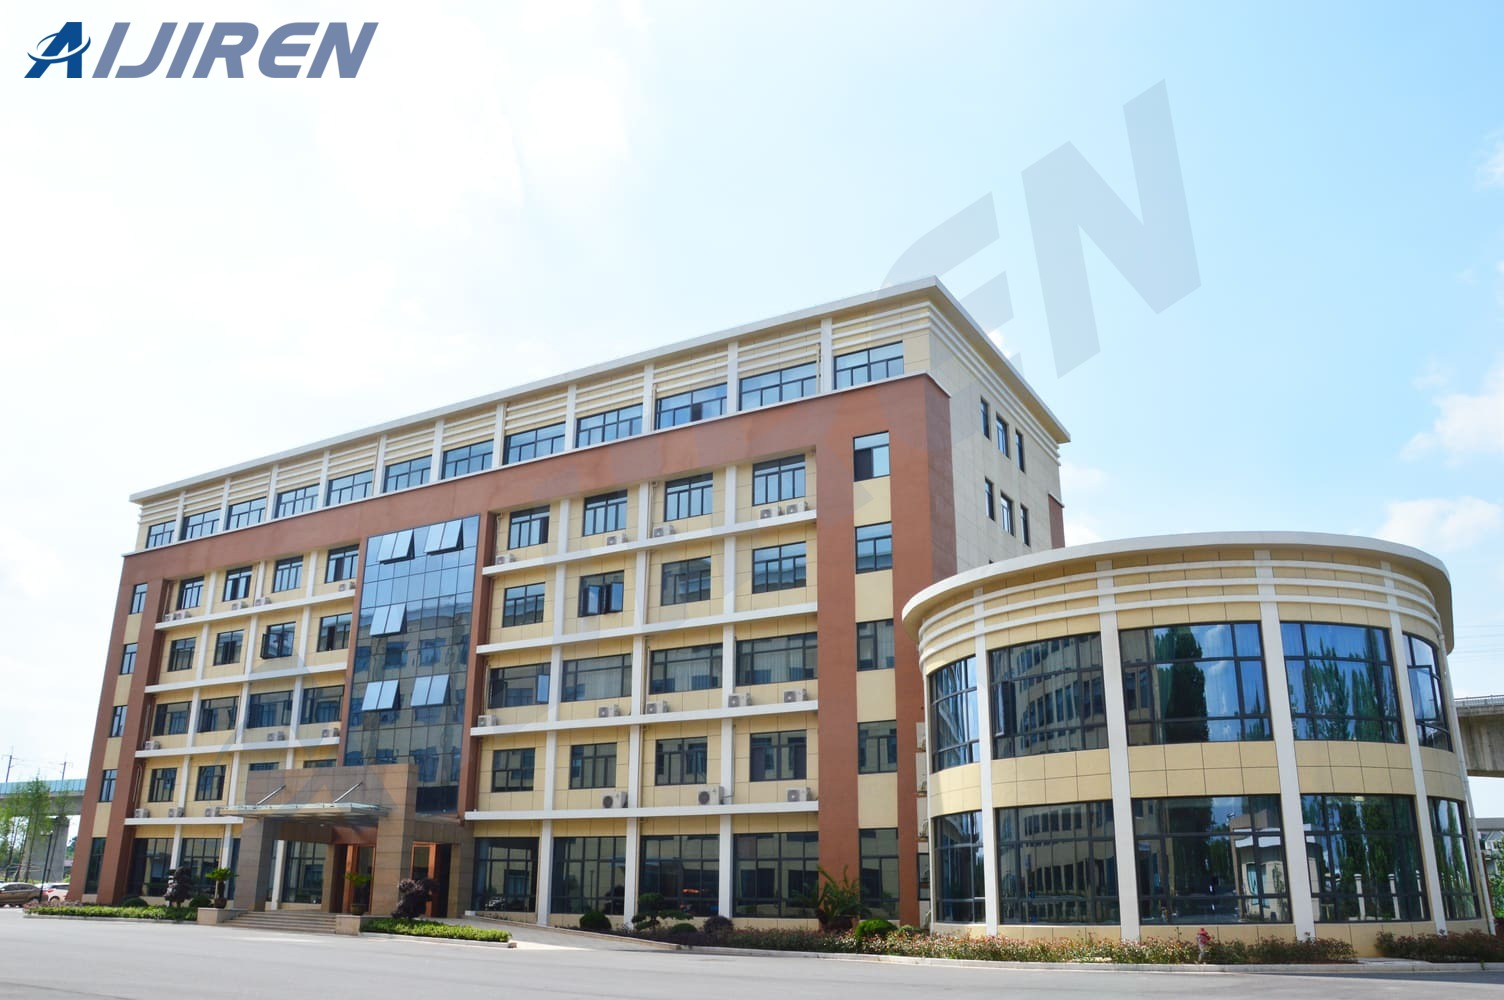 20ml headspace vialOffice Building of Syringe Filter Factory